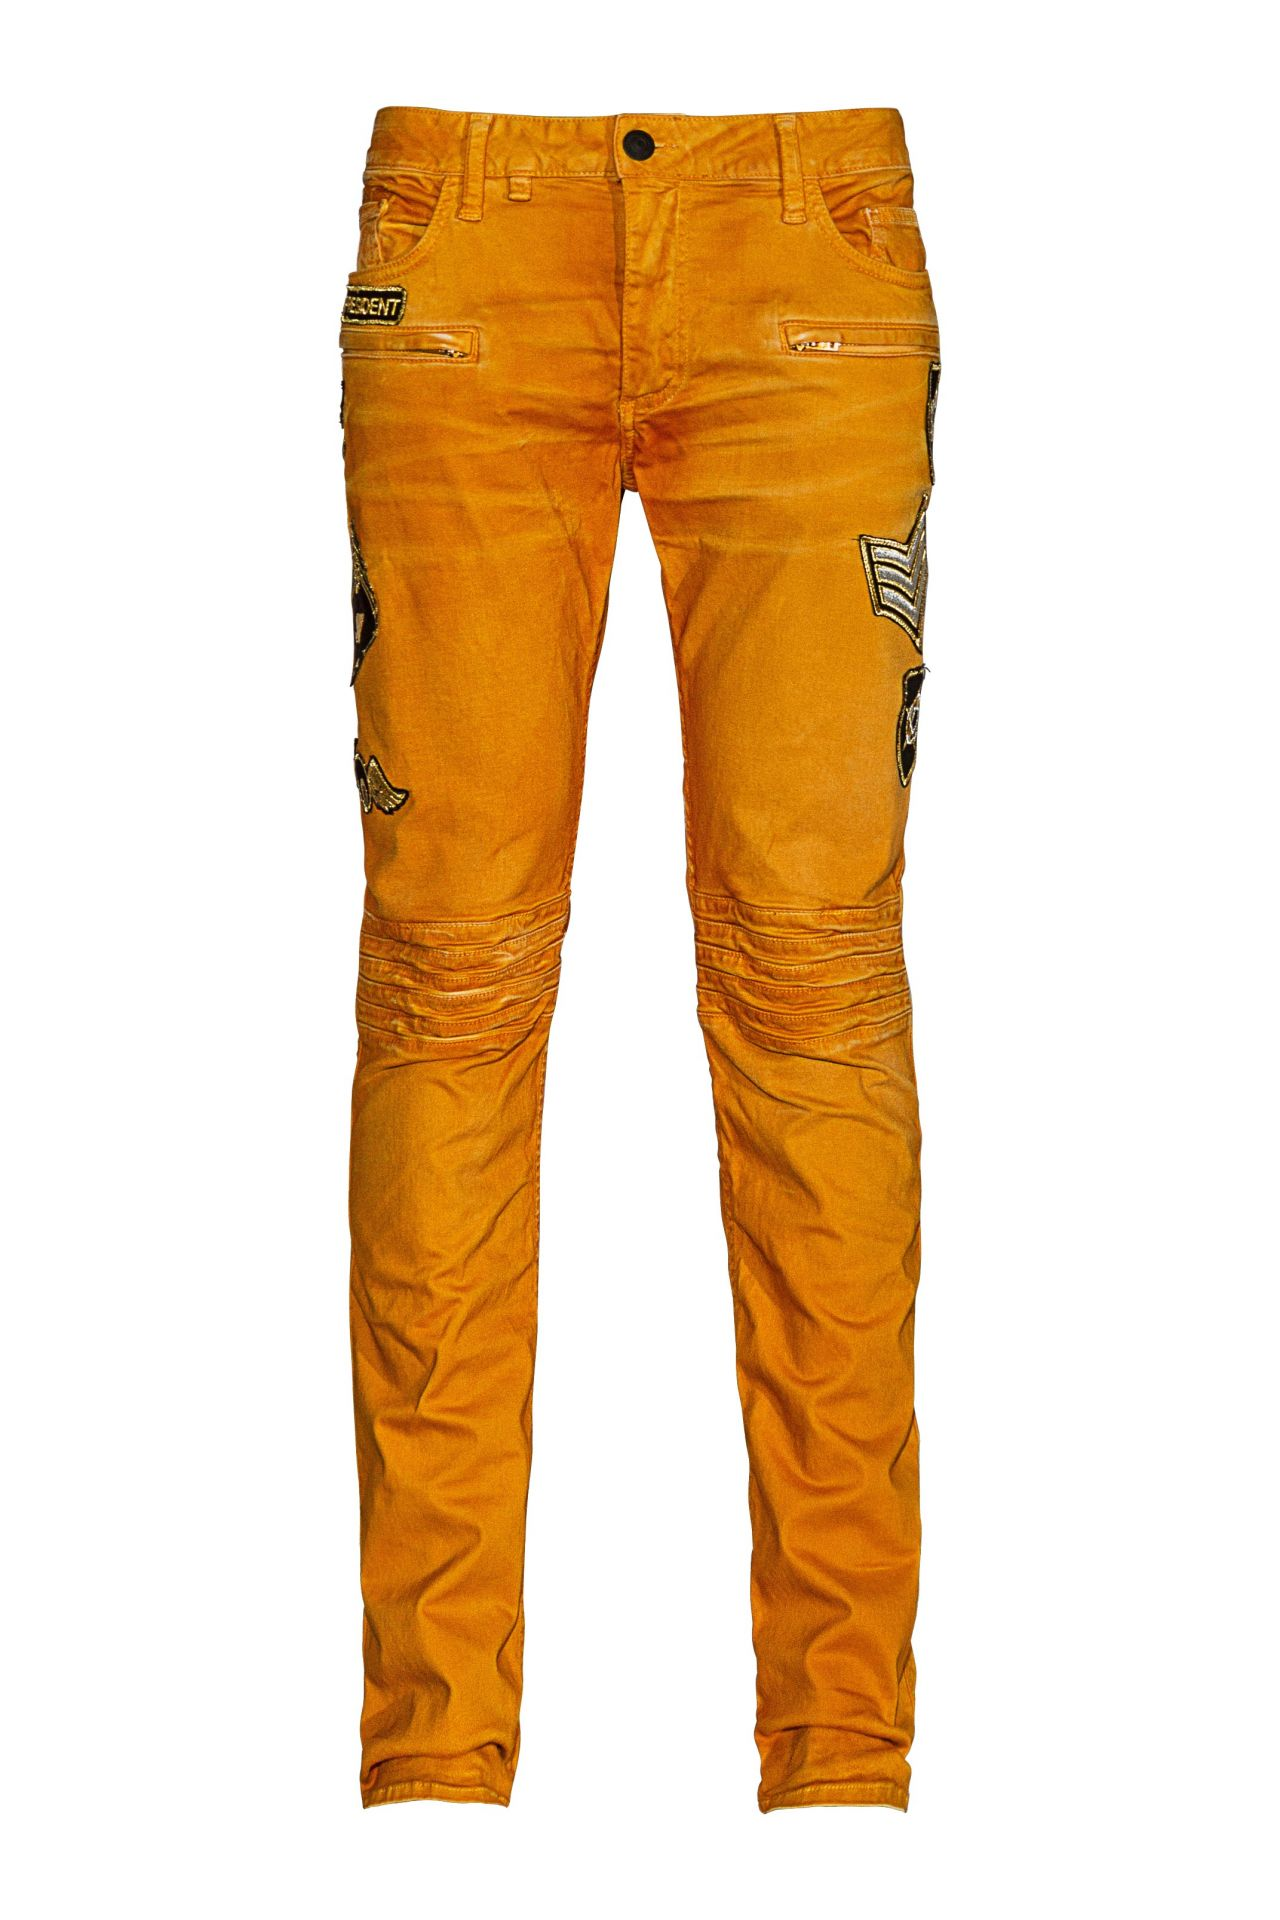 MOTO IN ORANGE WITH PATCHES